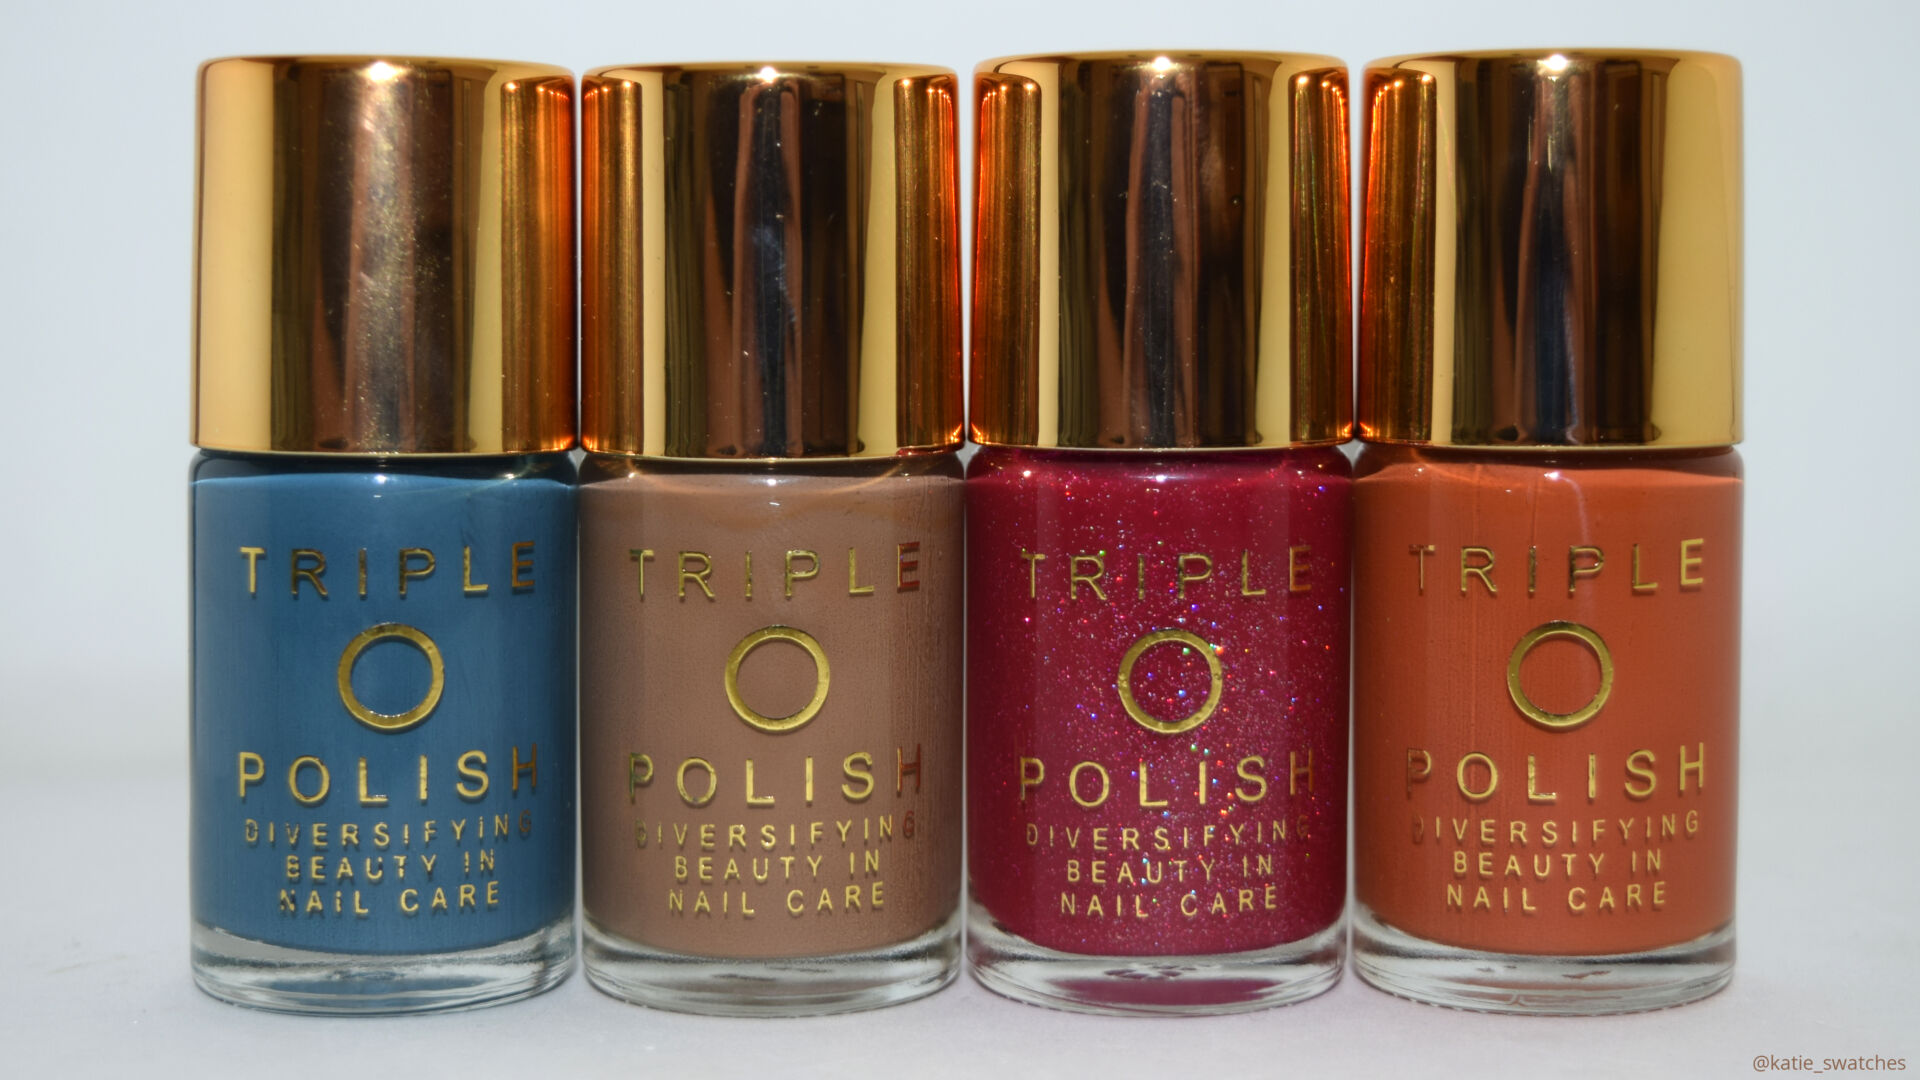 Triple O Polish - Ife Kingdom Collection nail polish.